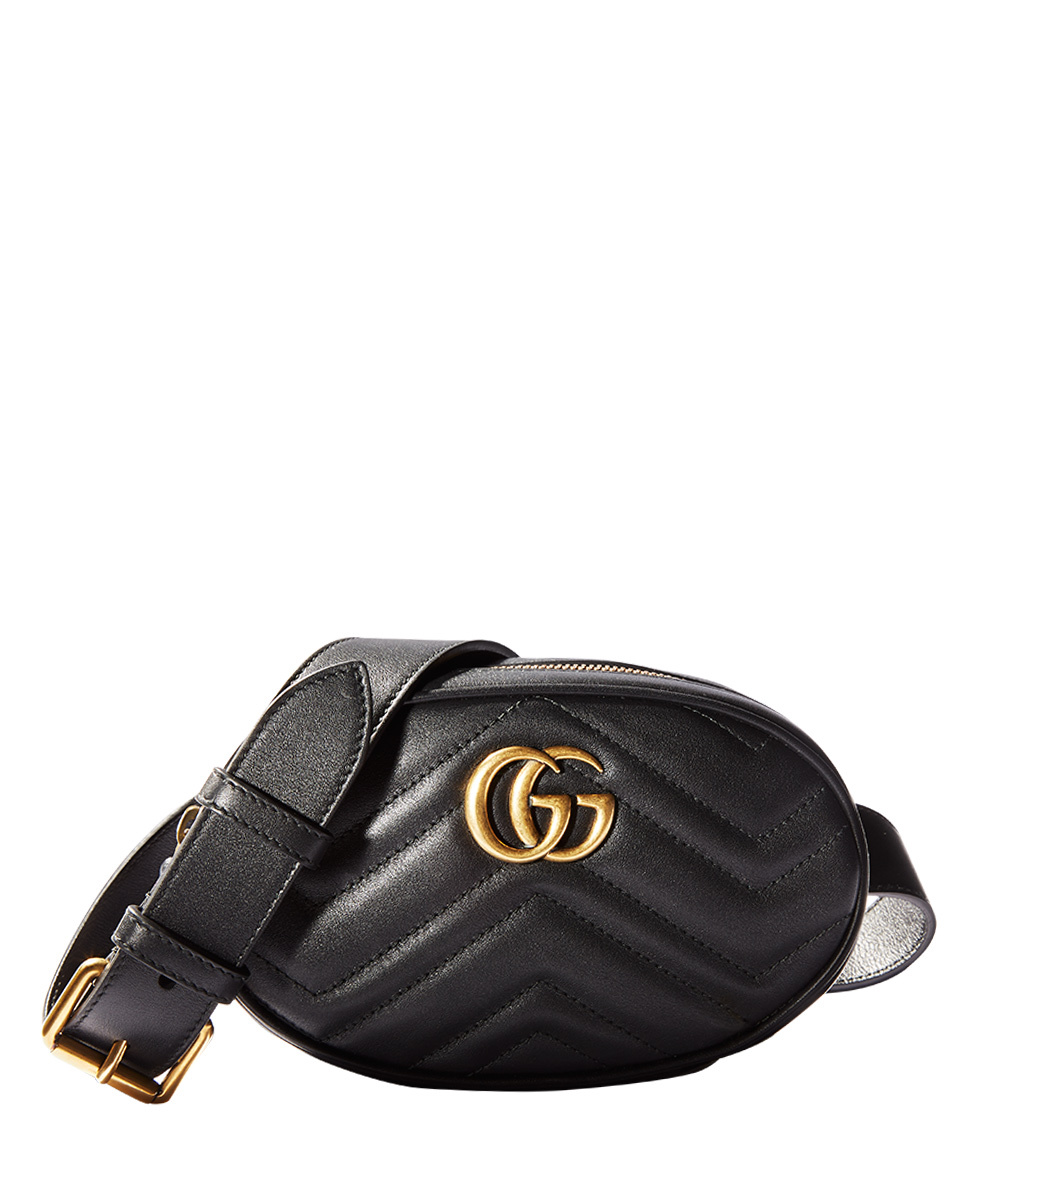 Gg Marmont 2.0 Matelasse Leather Belt Bag - Black